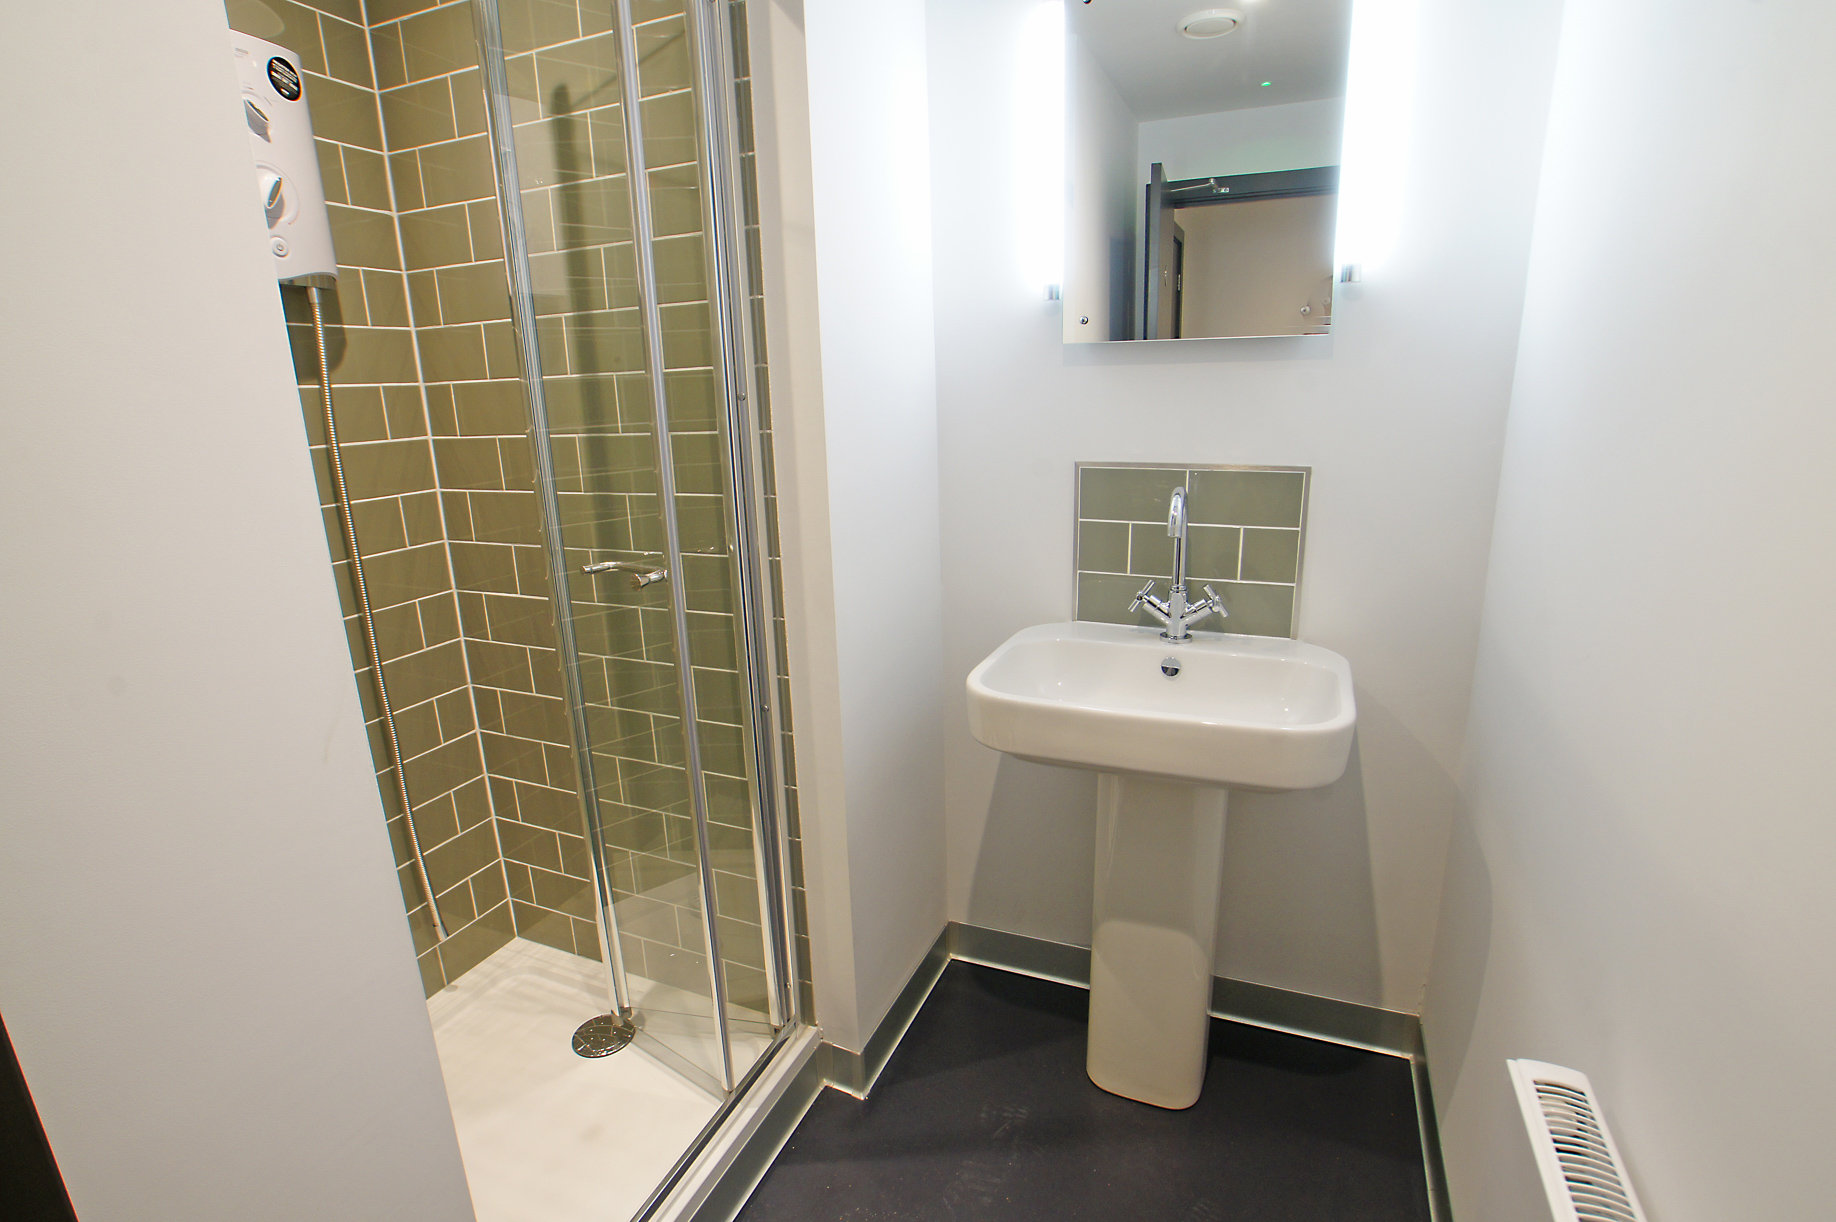 Sussex House Office Space in Chichester with shower